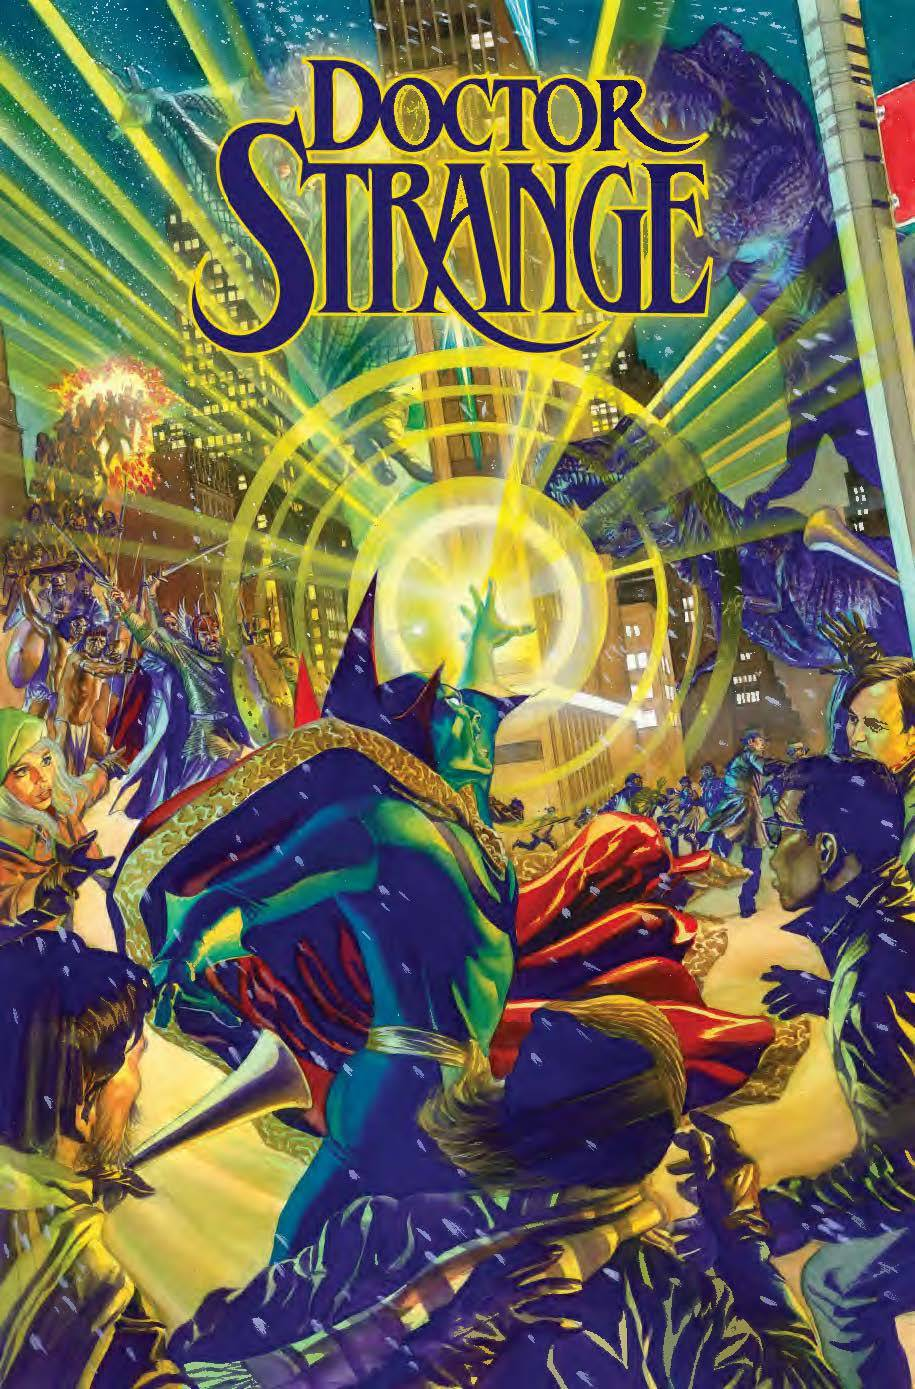 DOCTOR STRANGE 20 ALEX ROSS MARVELS 25TH VAR.jpg